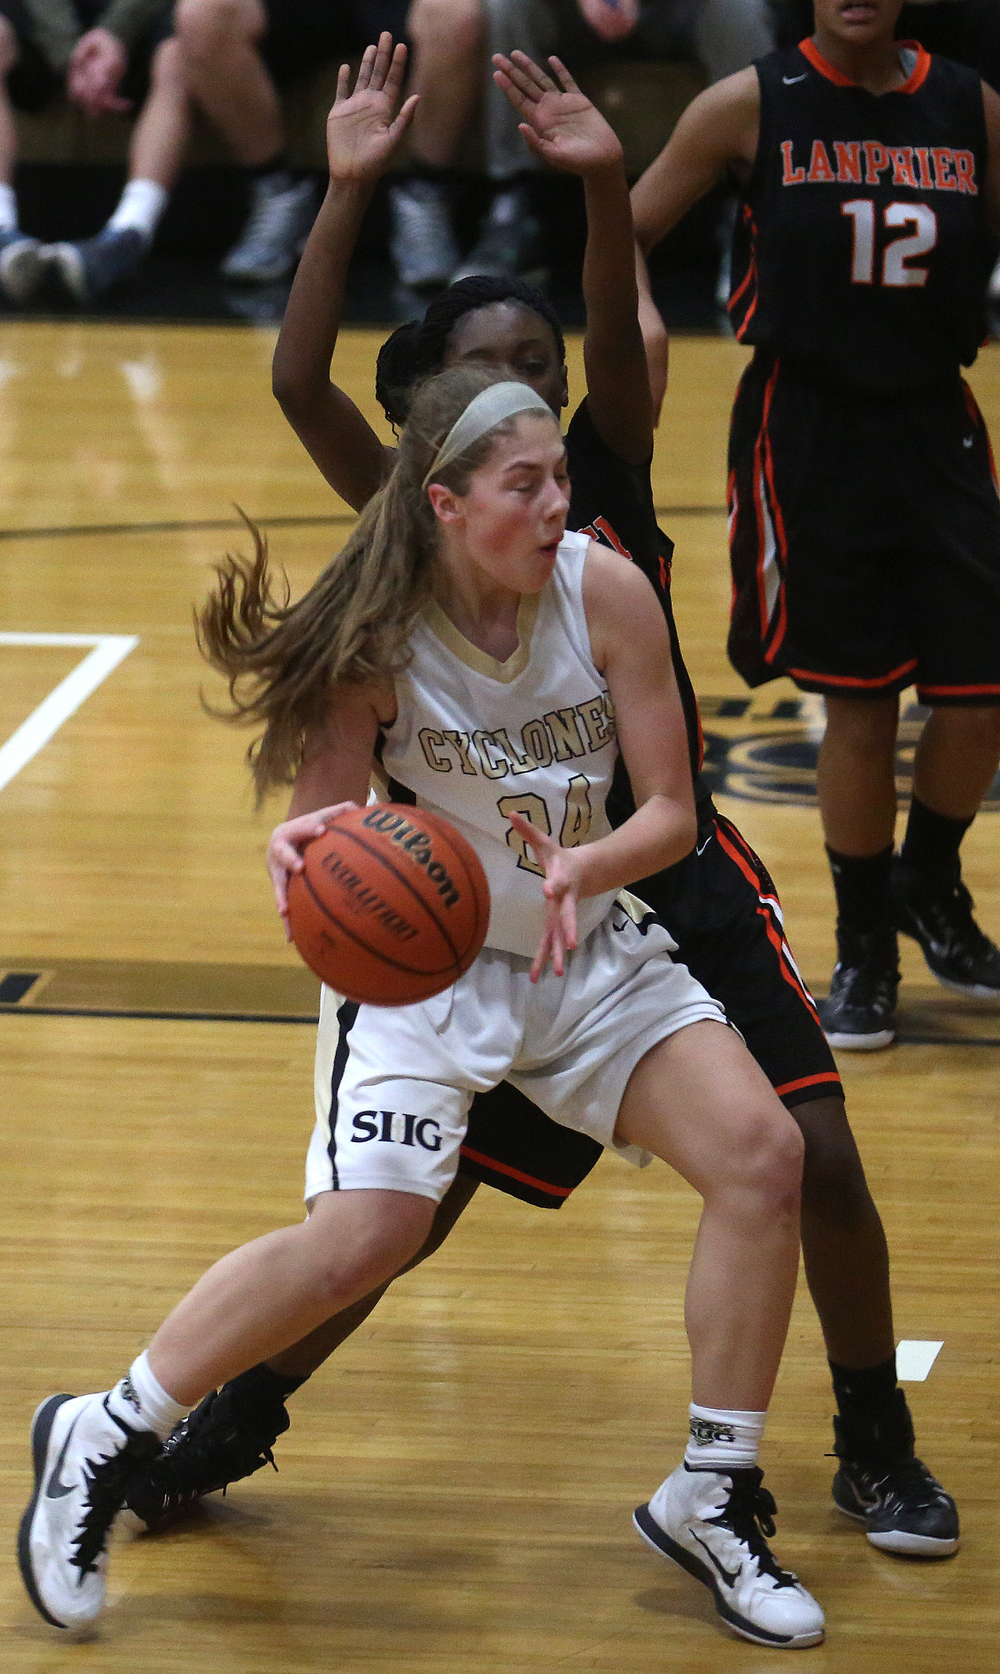 SHG player Anna Lowis prepares to put up a shot. Sacred Heart Griffin defeated Lanphier 43-29 during second night action at the Girls City Basketball Tournament held at Belz Gym at Sacred Heart-Griffin's west campus in Springfield on Wednesday evening, Jan. 28, 2015. David Spencer/The State Journal-Register